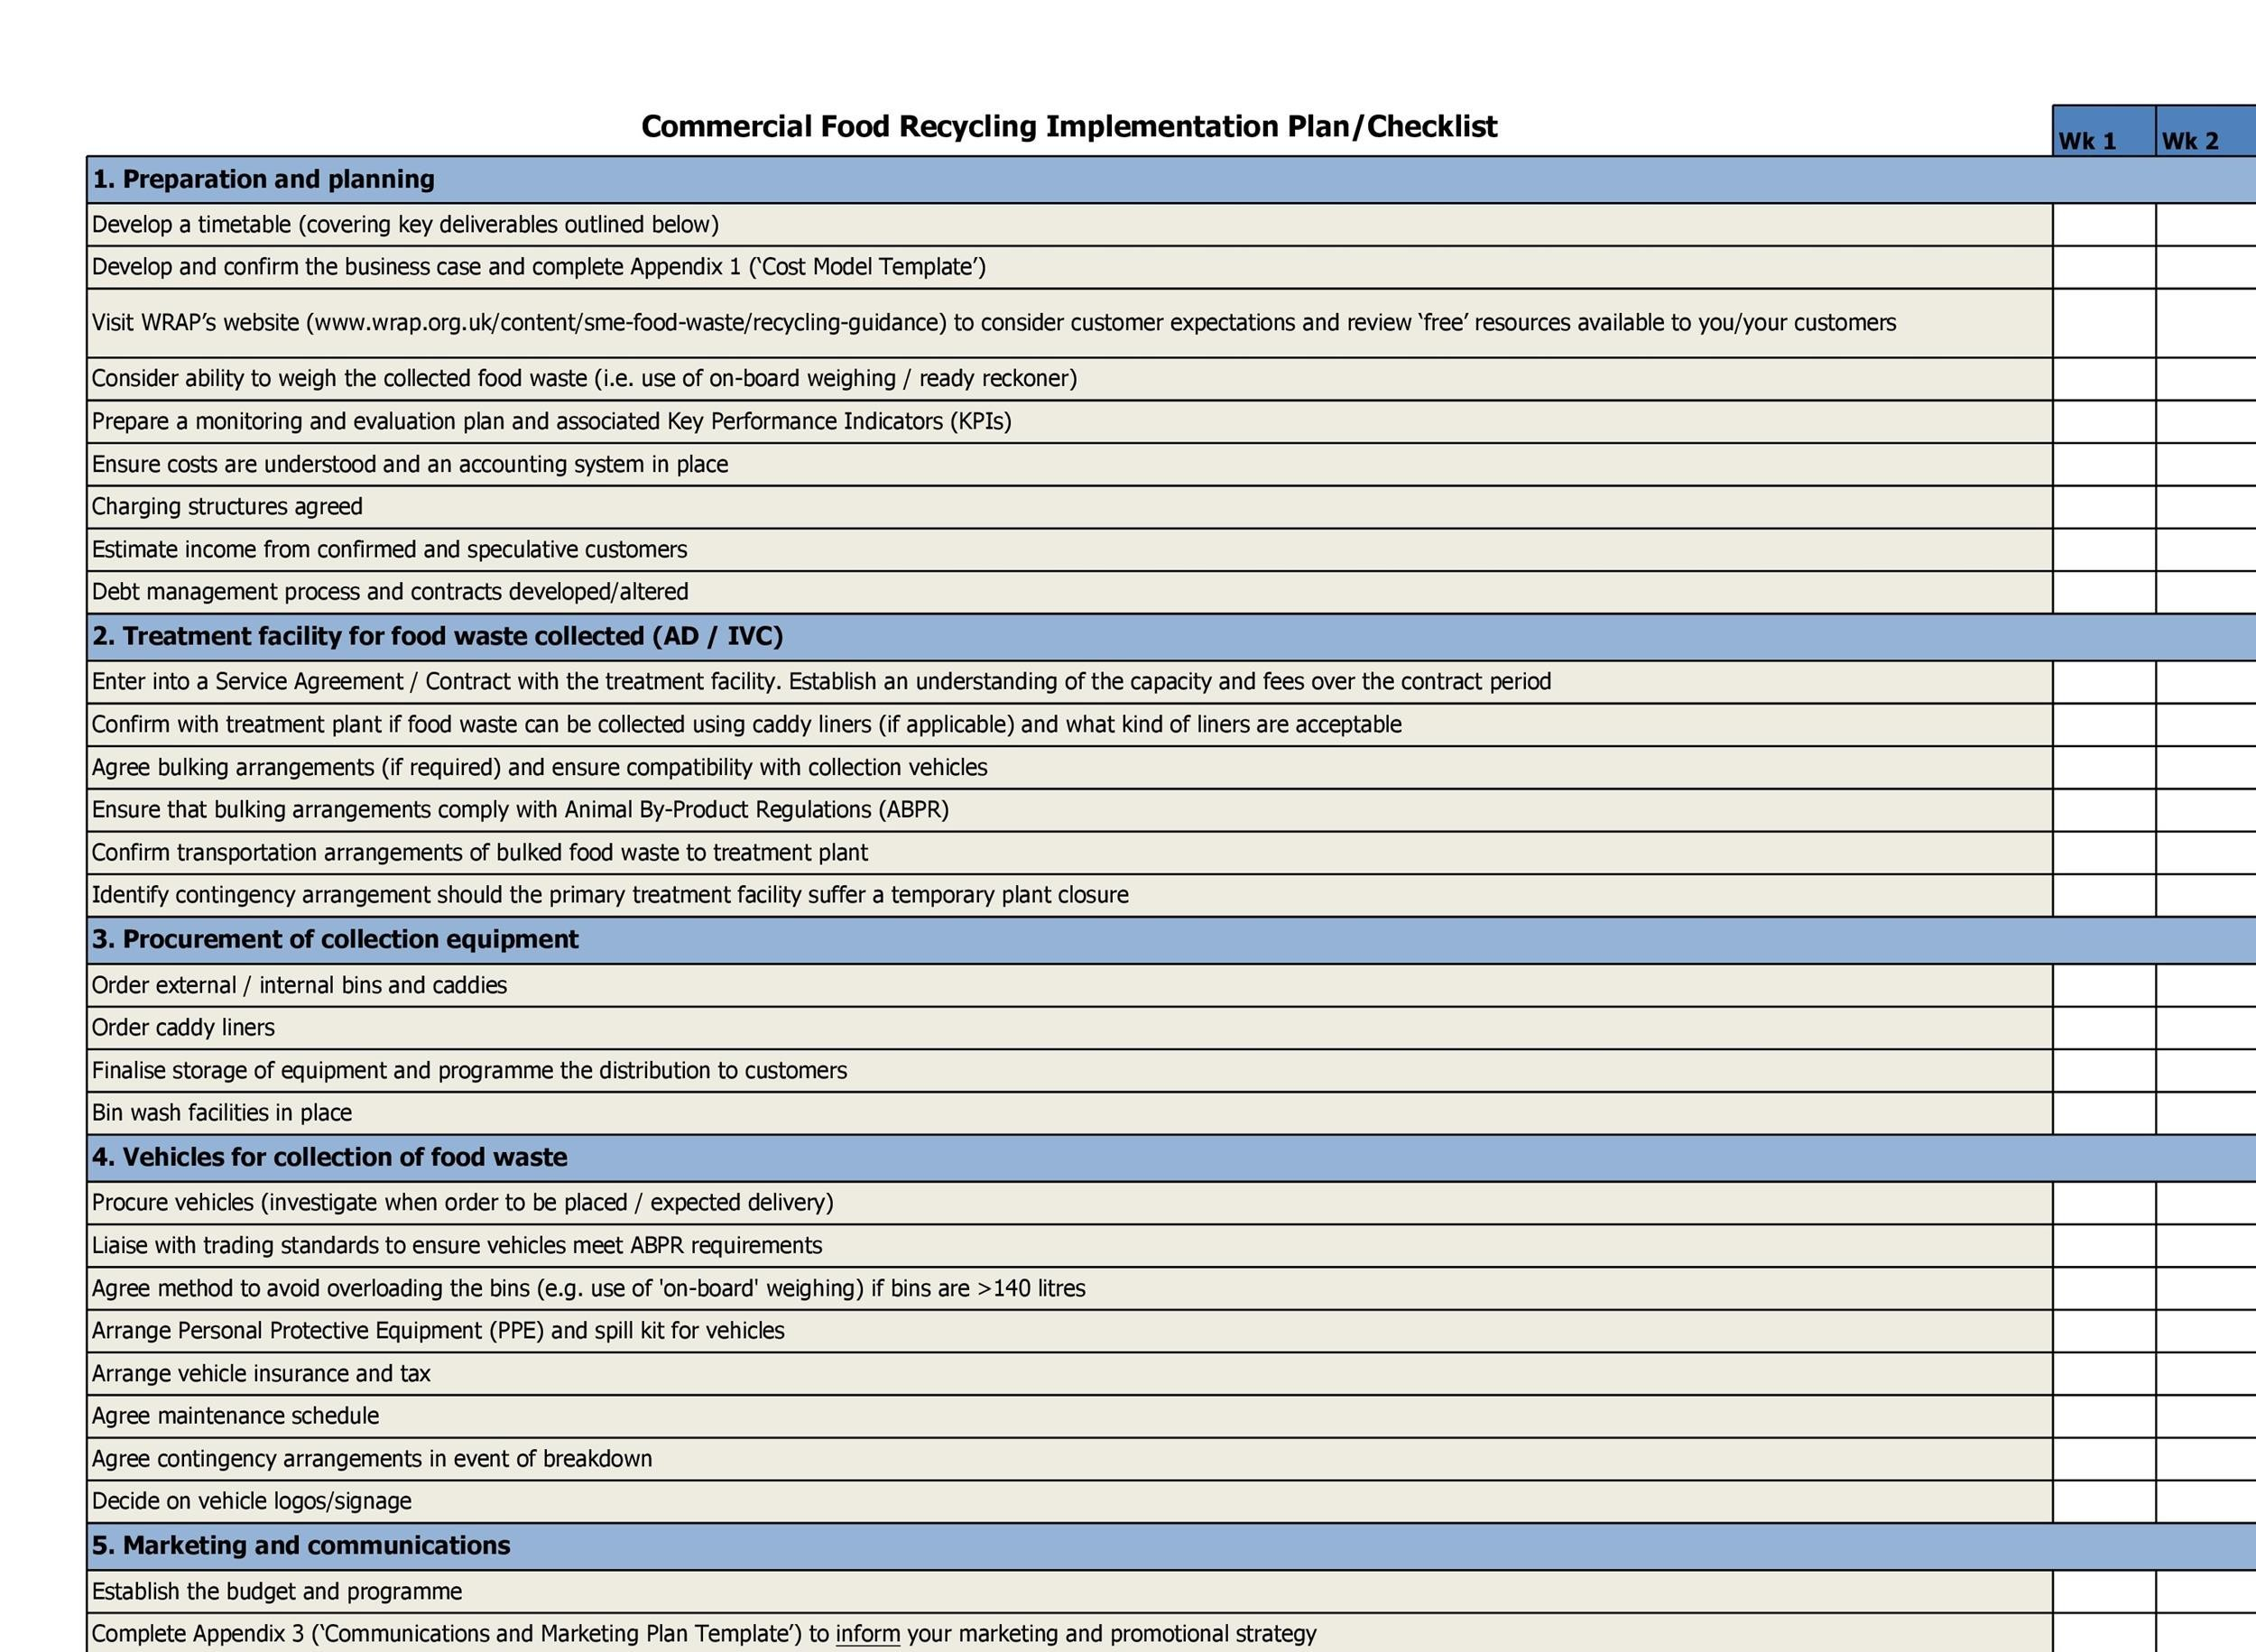 Free implementation plan 03